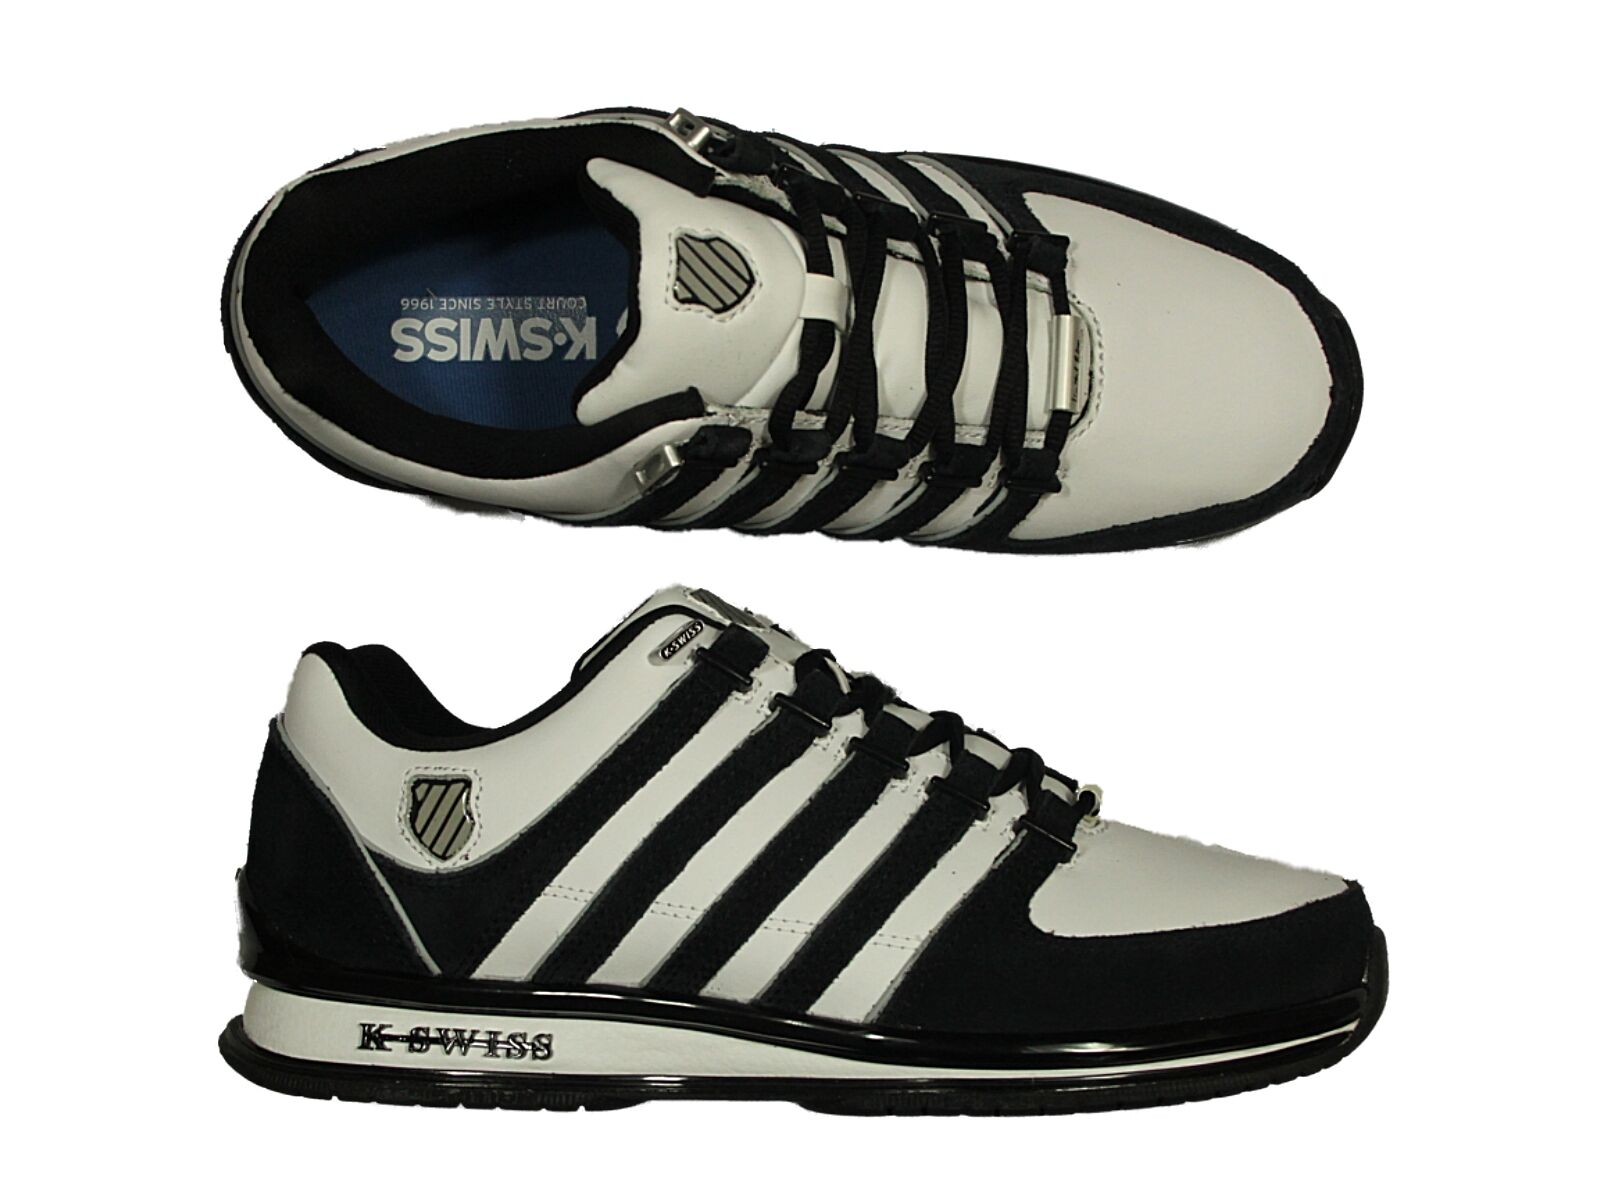 MENS TRAINERS K.SWISS RINZLER SP IN WHITE-BLACK LACE UP FOOTWEAR SIZES 6 - 12